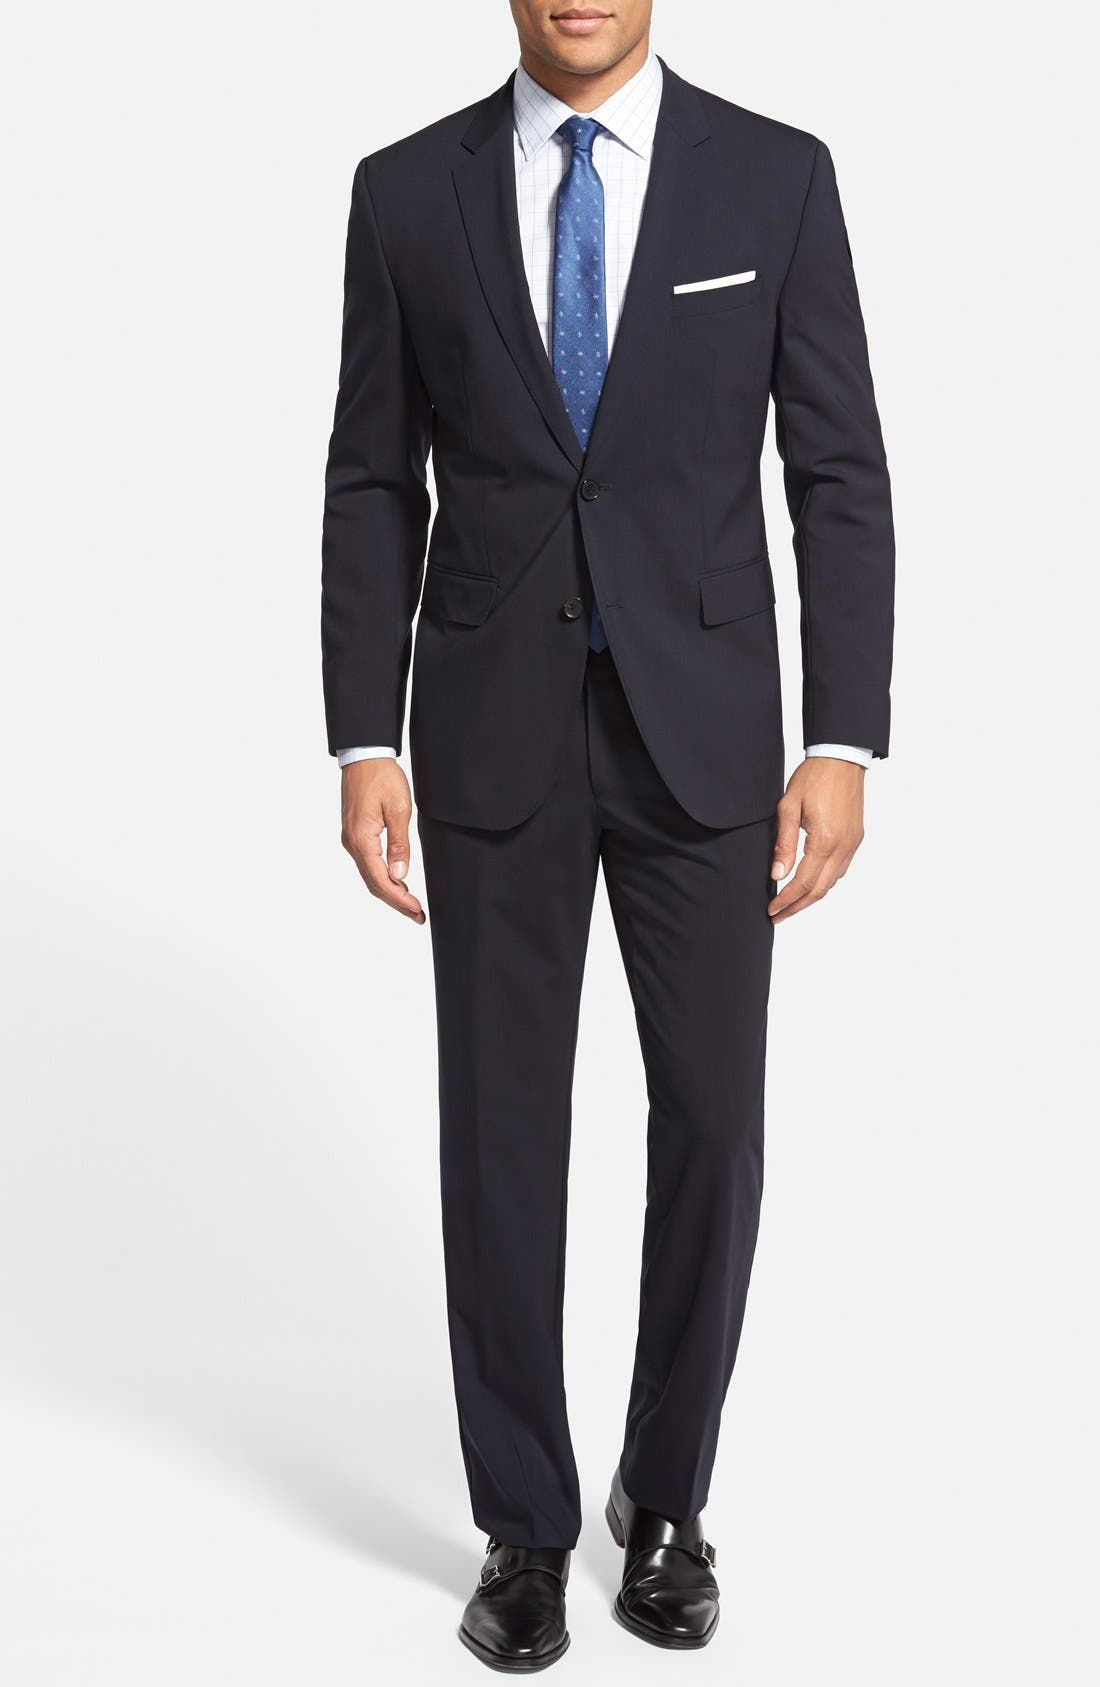 Alternate Image 1 Selected - BOSS 'Jam/Sharp' Trim Fit Navy Suit